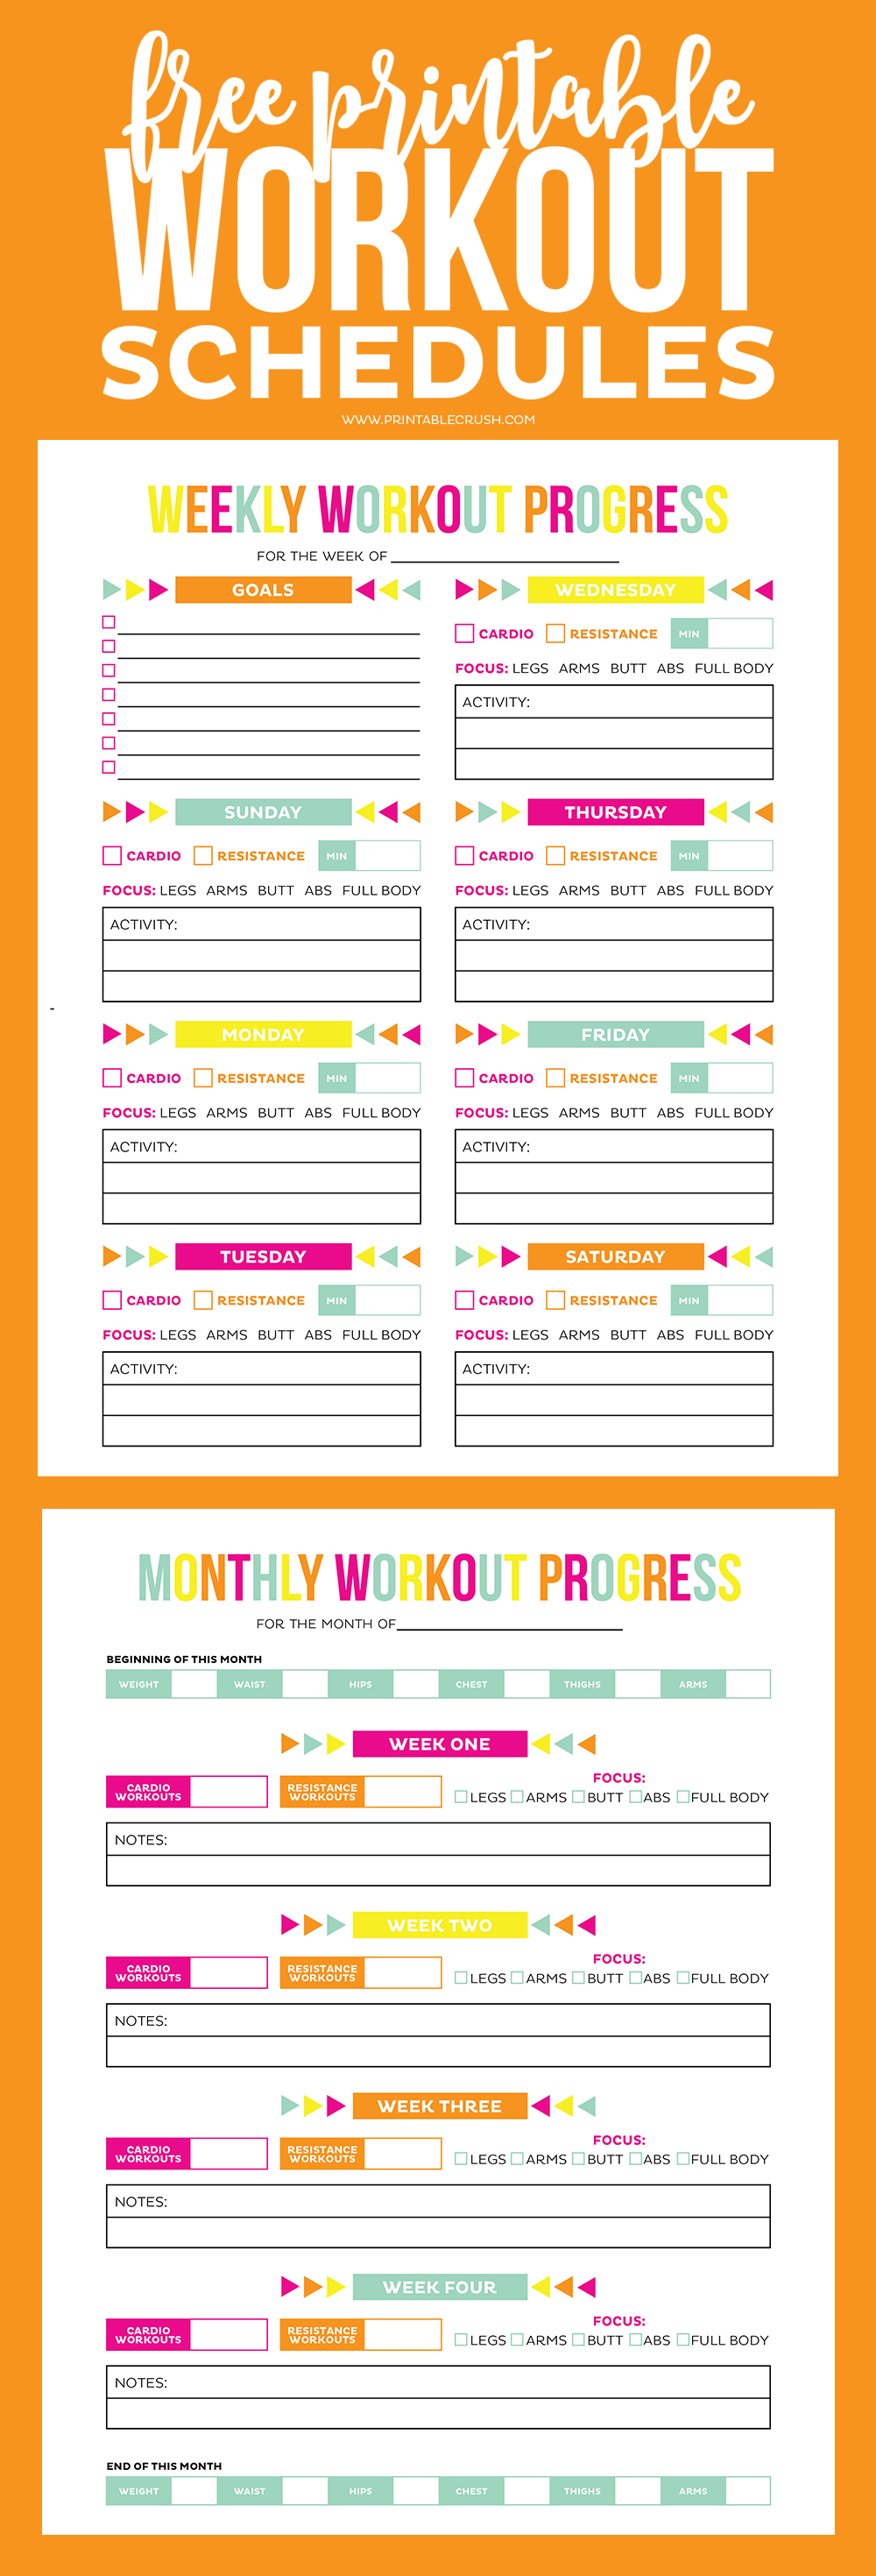 It is an image of Vibrant Printable Workout Calendars